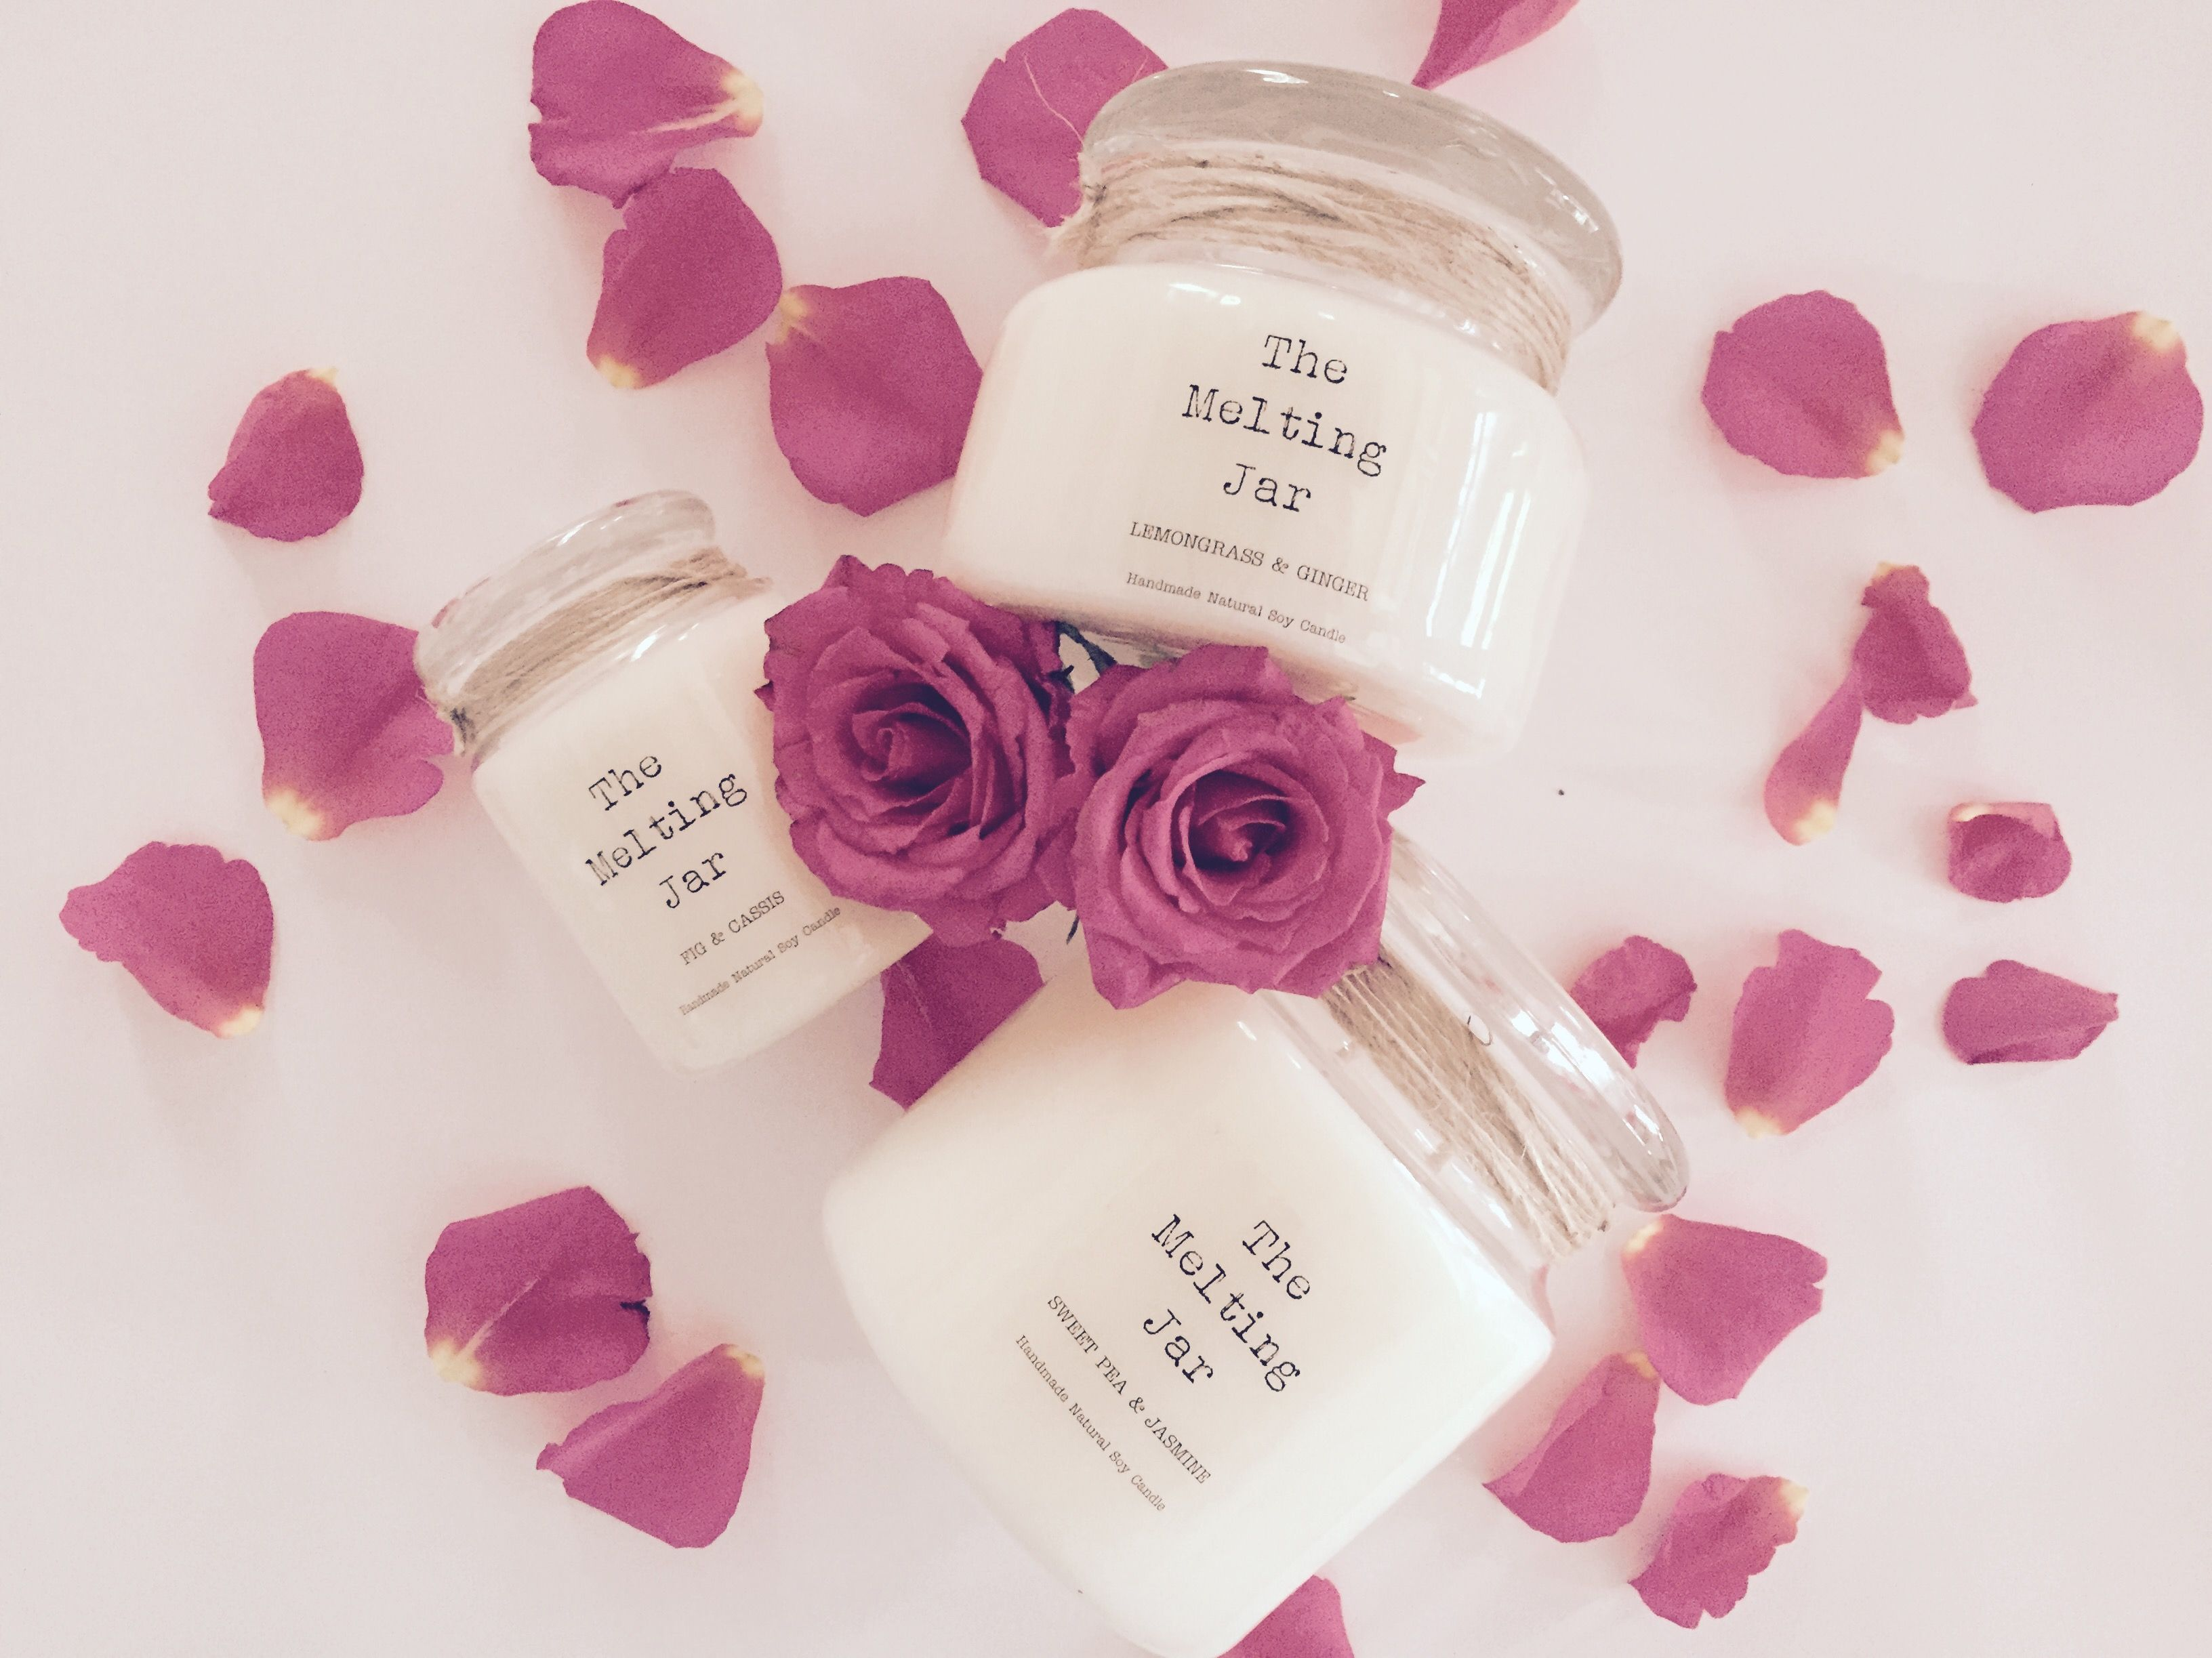 49 best Handmade Natural Soy Candles images on Pinterest | Arm work ...